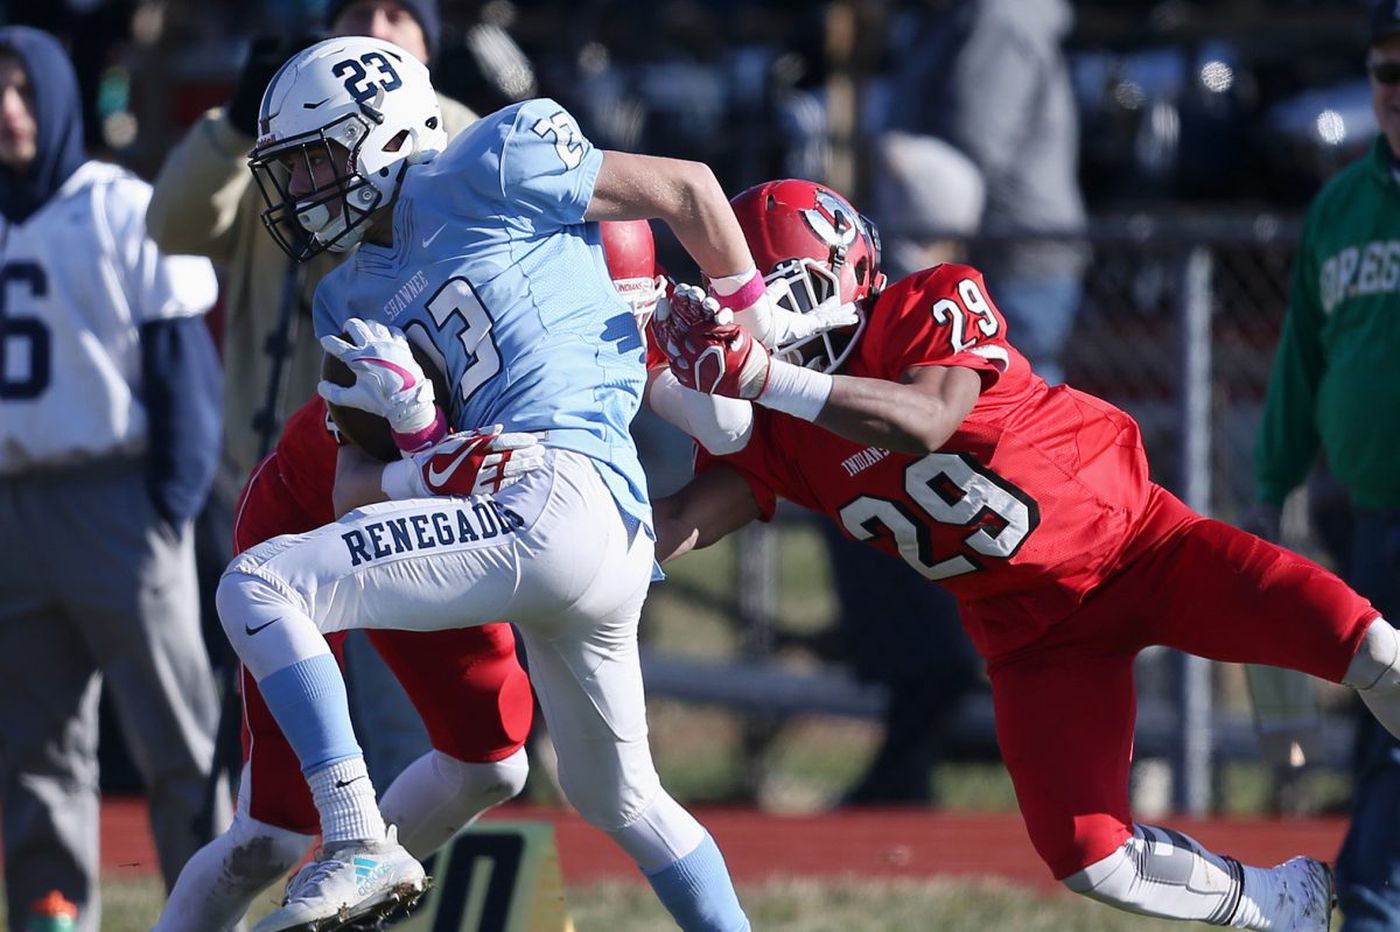 Jake Schillinger powers Shawnee into South Jersey Group 4 football title game